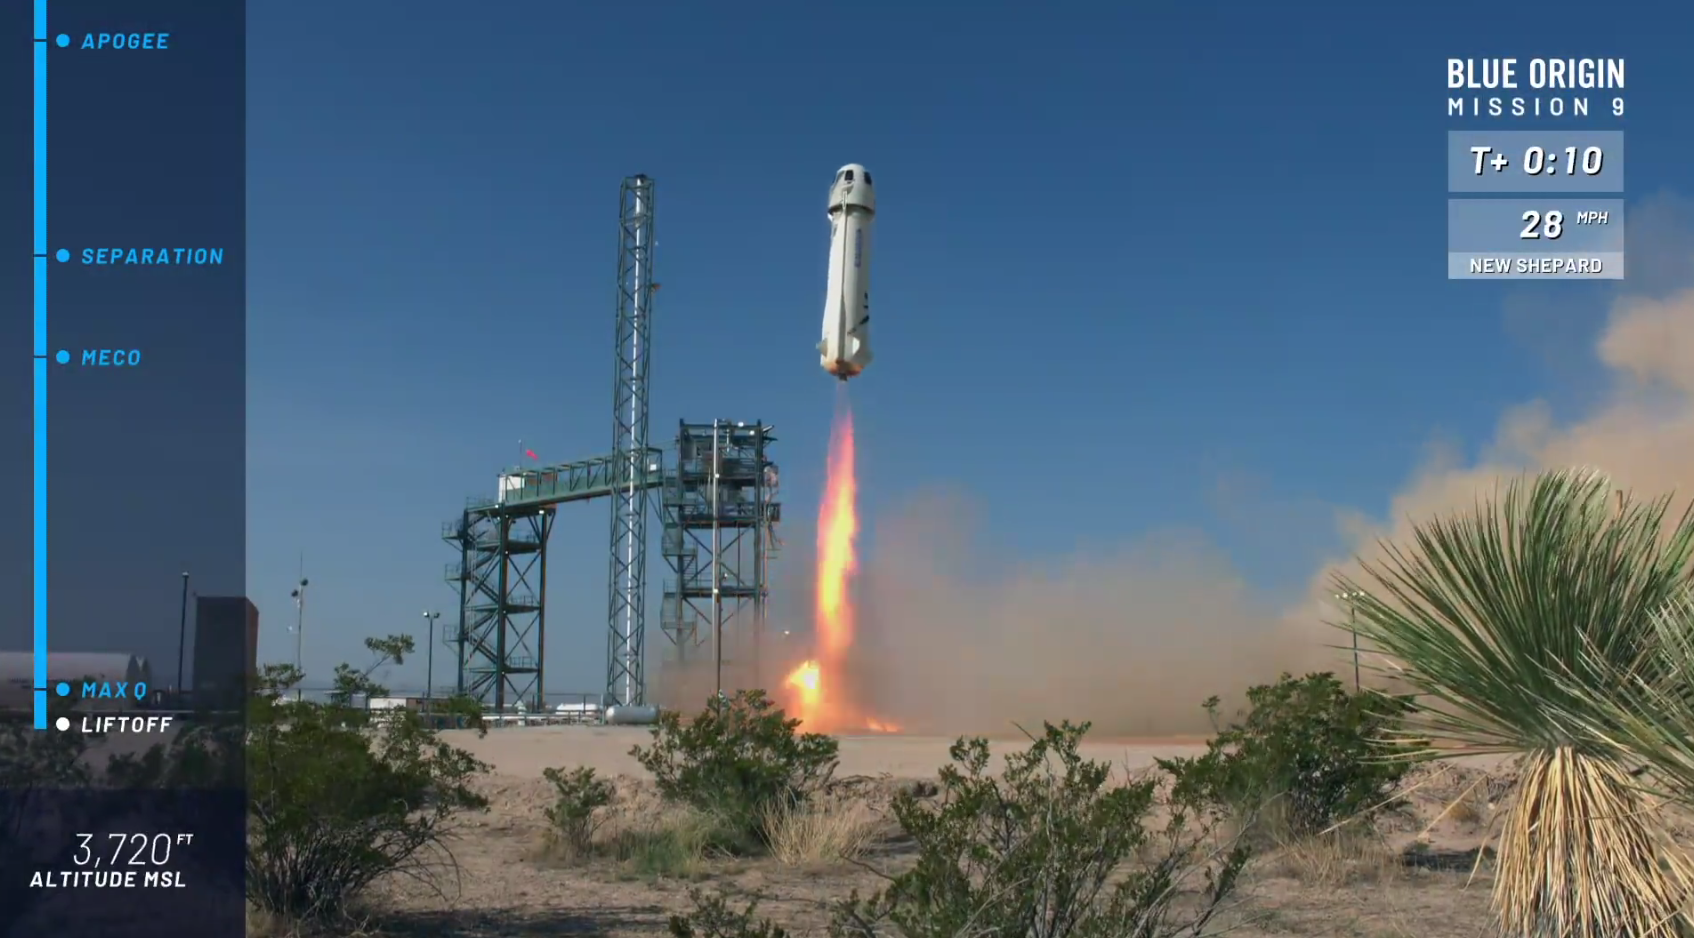 Blue Origin's New Shepard rocket blasts off from the launch pad on Wednesday.